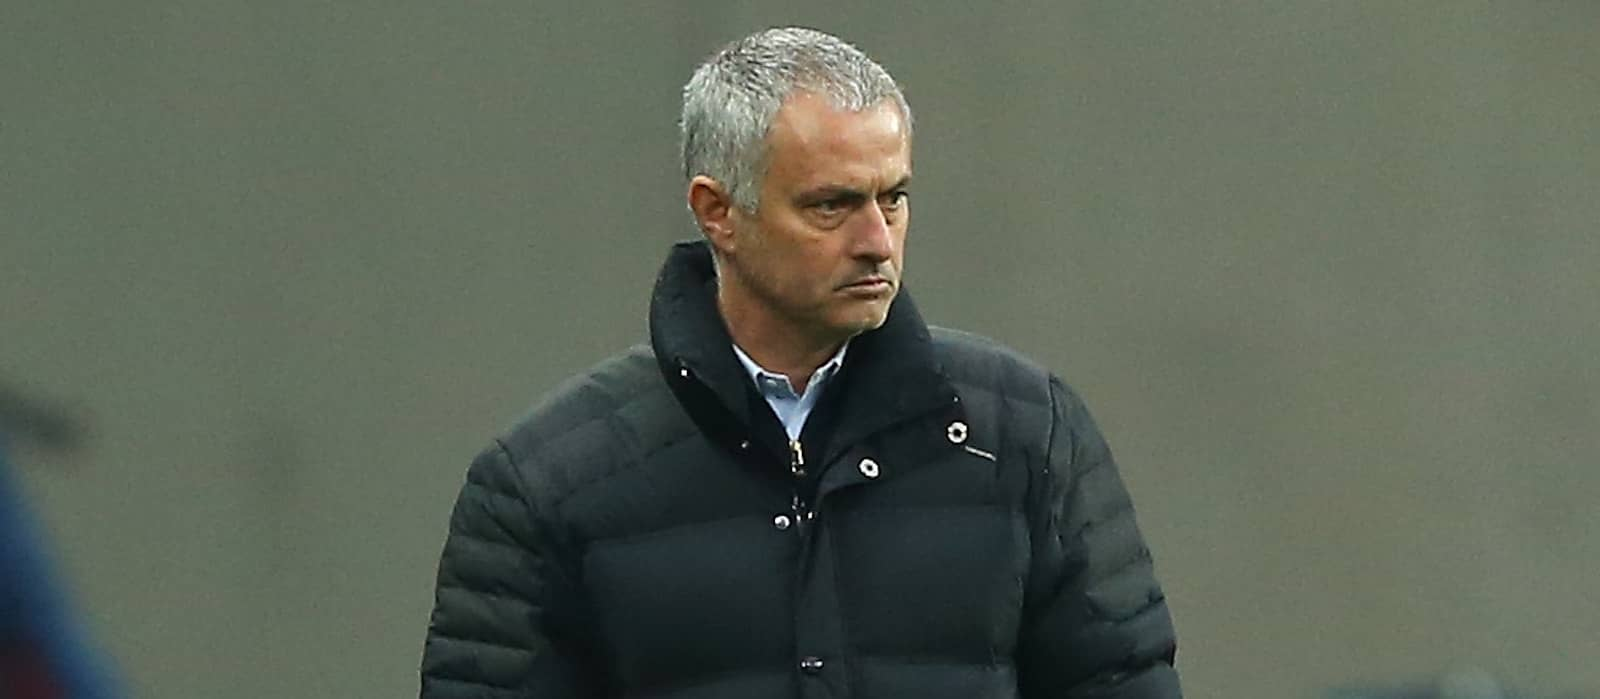 Roy Keane blasts Jose Mourinho for complaining at Manchester United